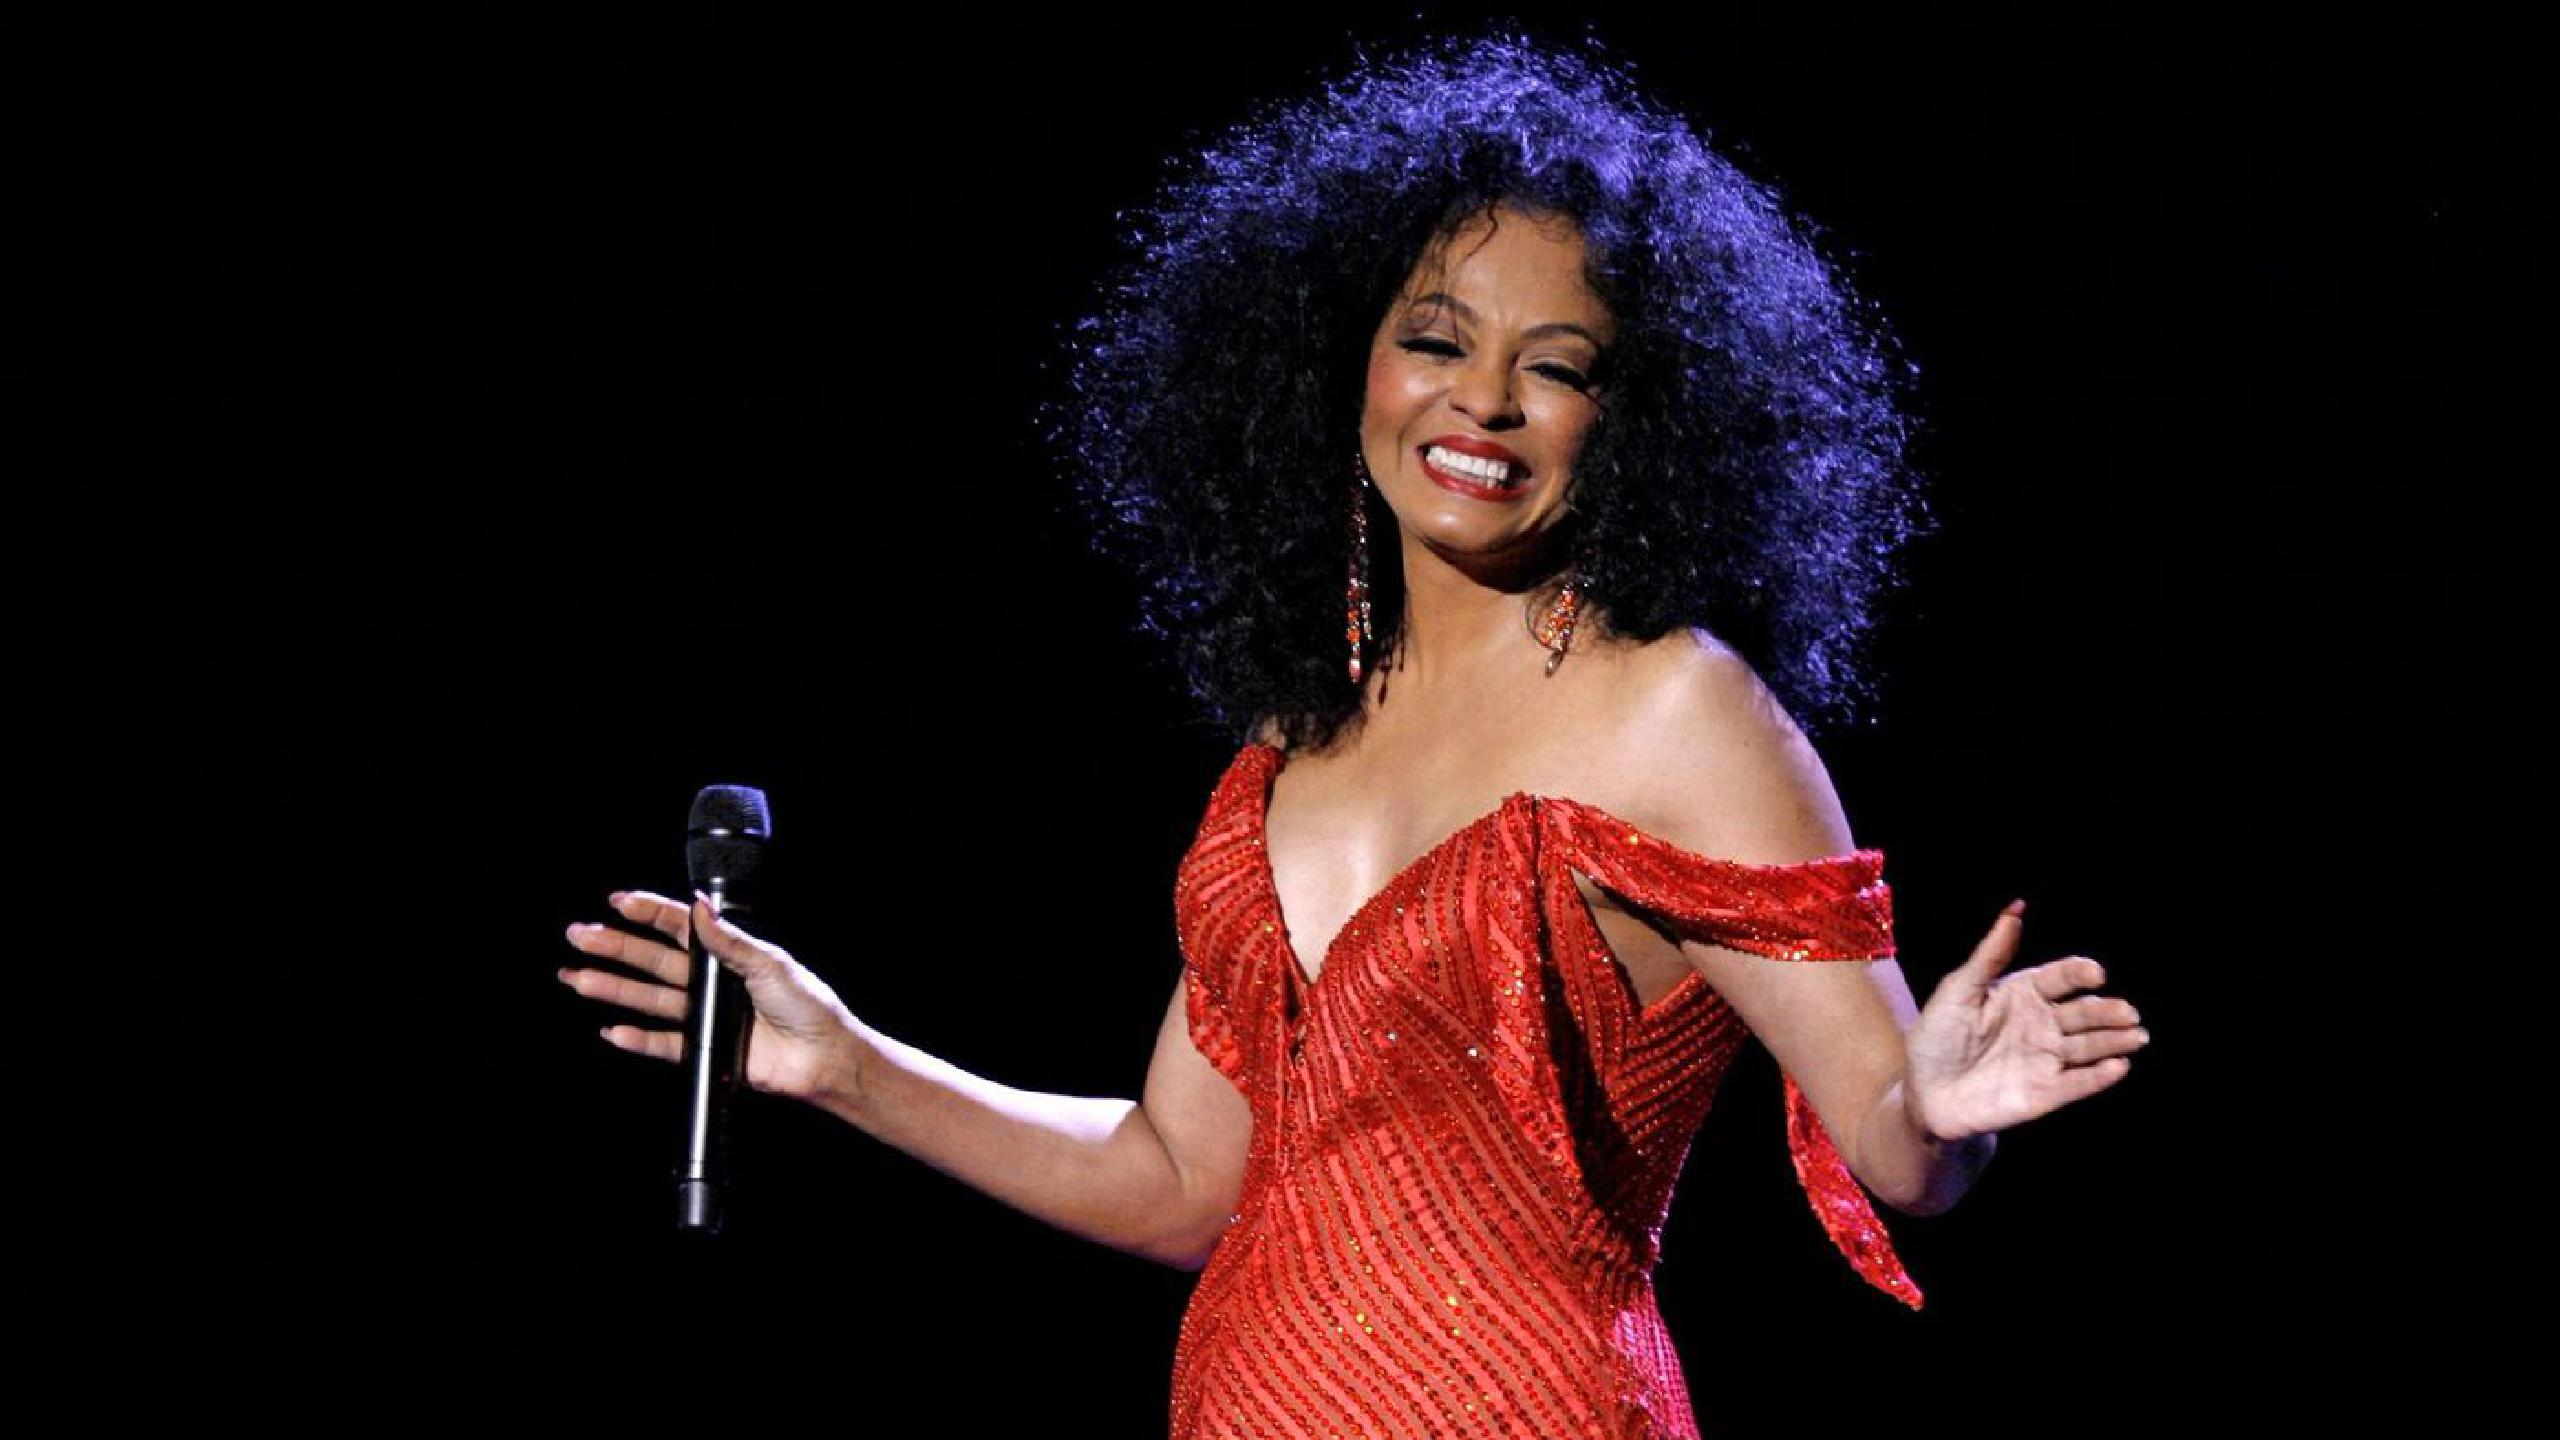 Diana Ross Tour 2020 Diana Ross tour dates 2019 2020. Diana Ross tickets and concerts